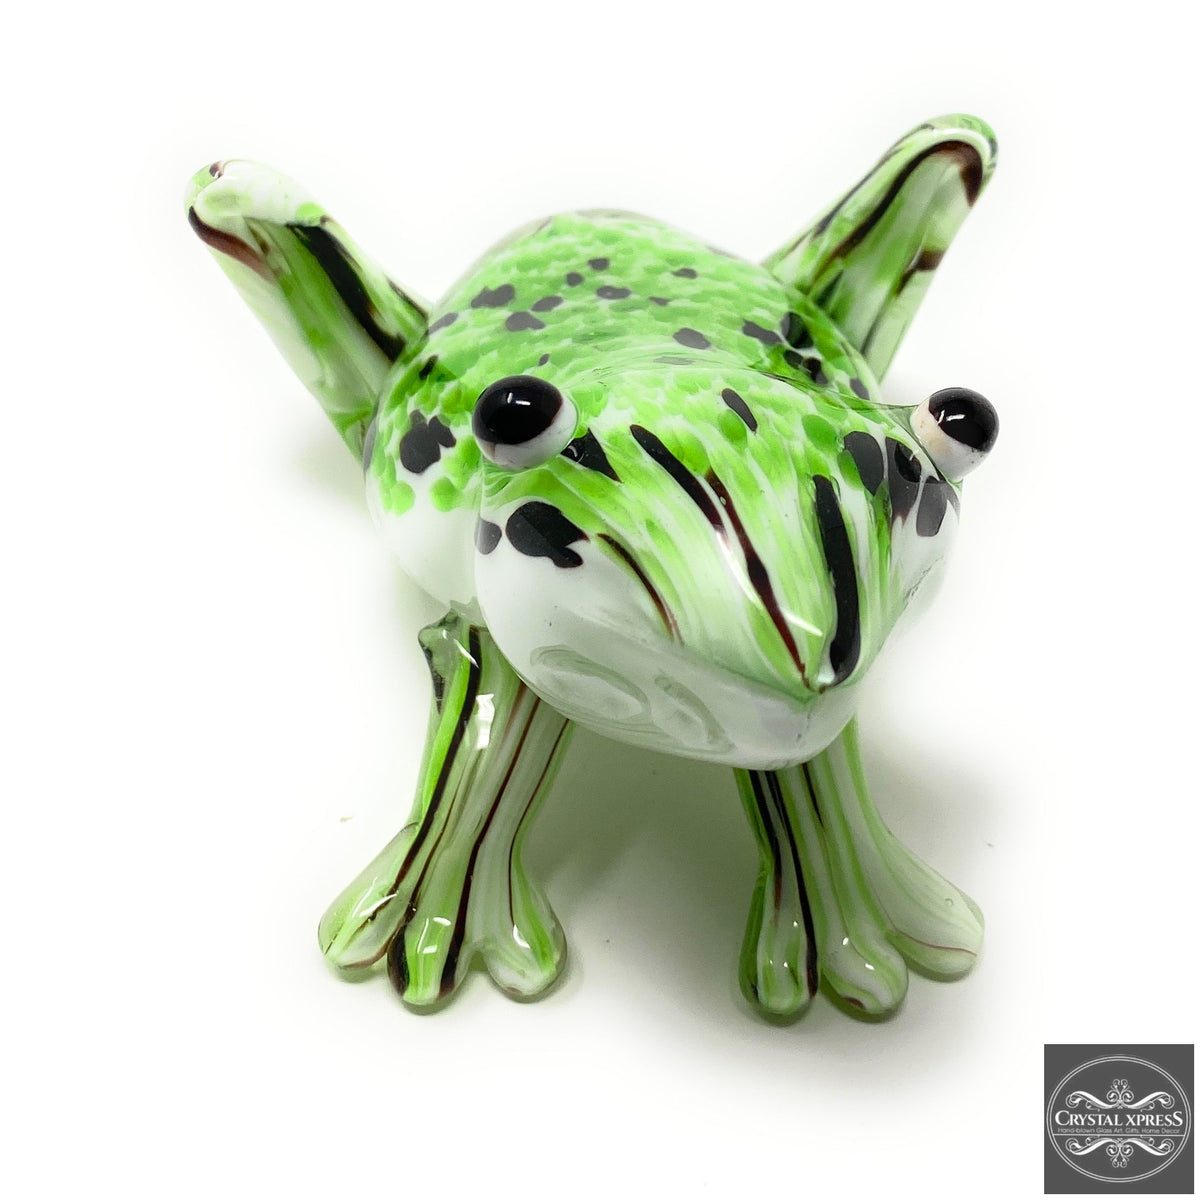 "Crystal Xpress New 6"" Hand Blown Glass Green Frog Figurine SculptureCrystal Xpress"